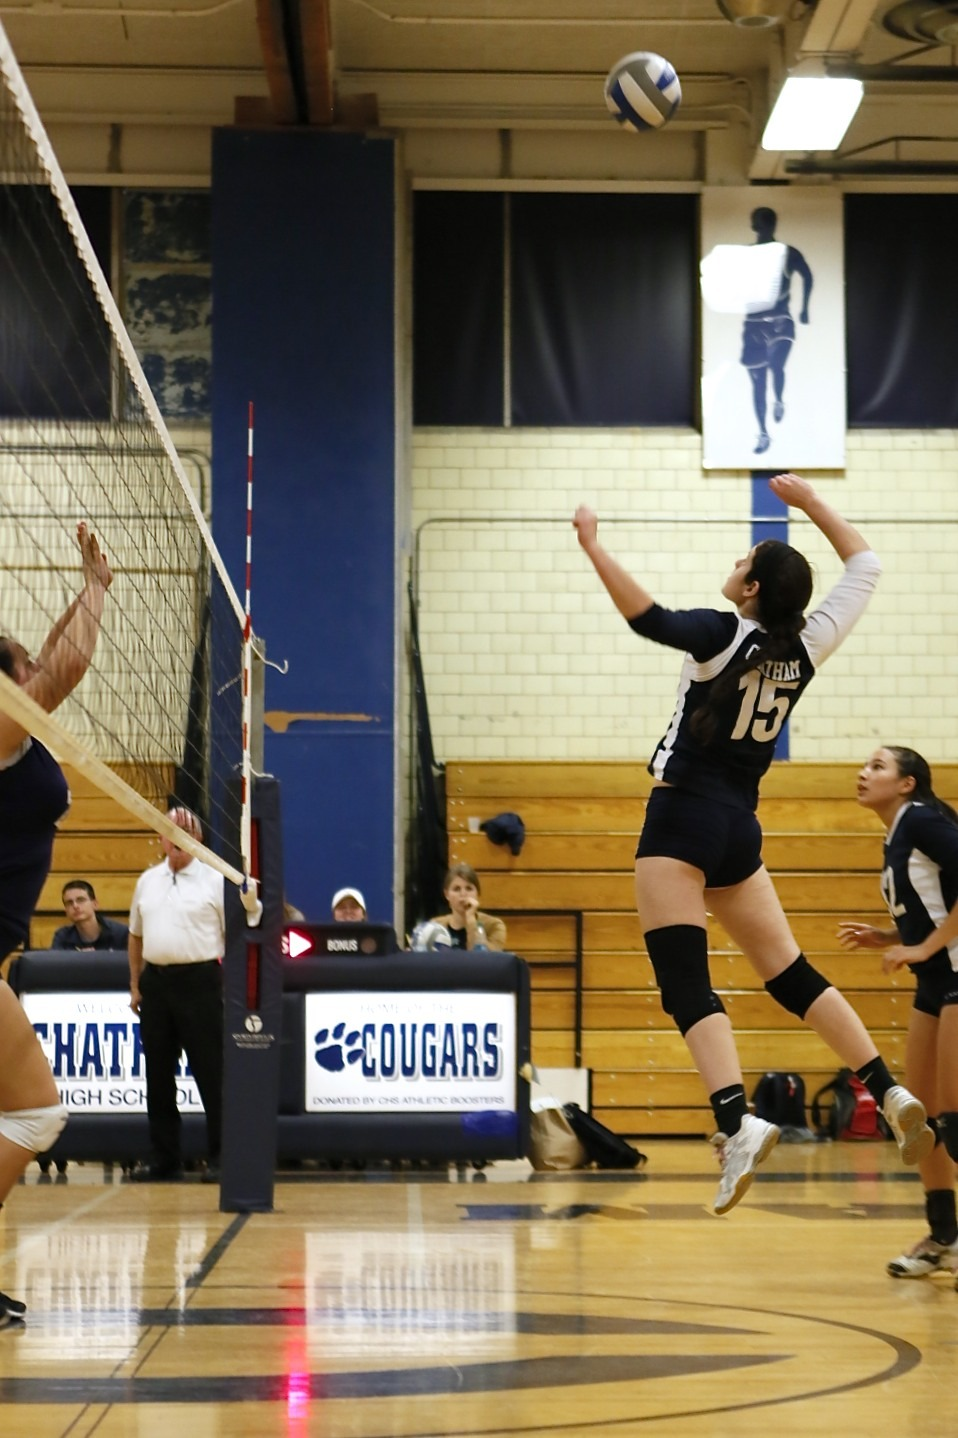 83c3296df411b0dd429e_Chatham_Girls_Volleyball-LL_6621.jpg